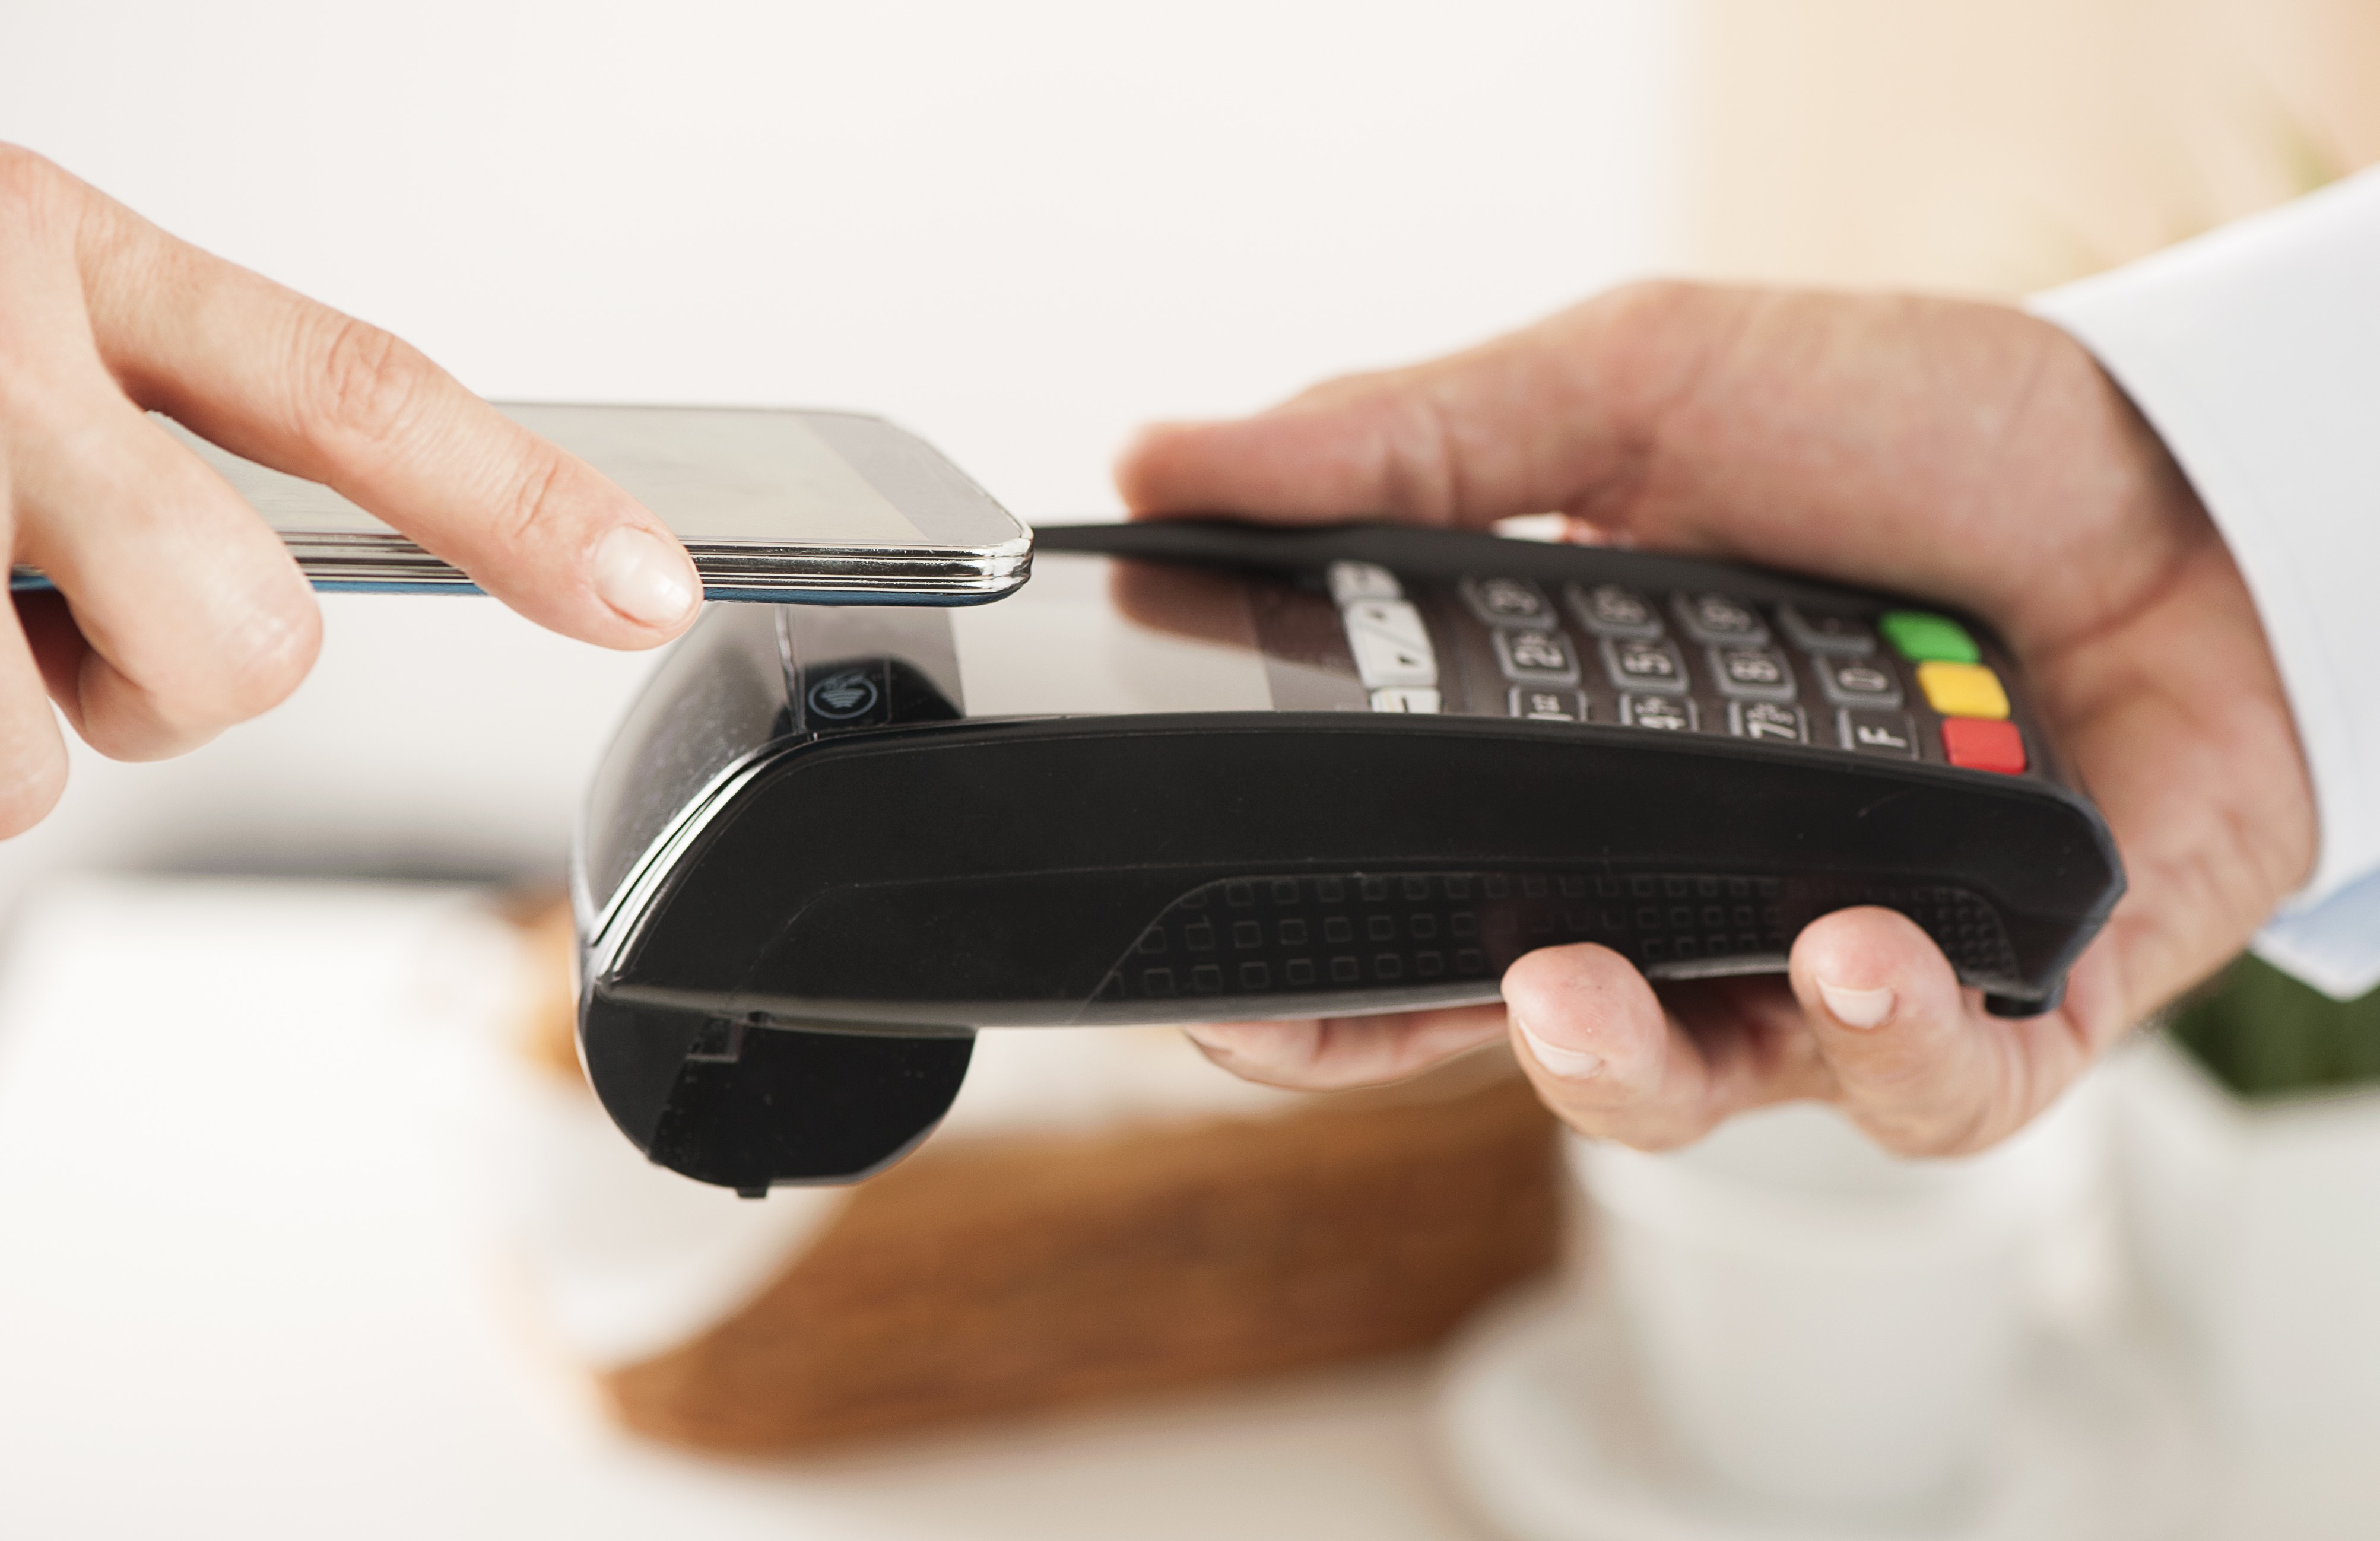 Netcetera Acquires Longtime NFC Tech Supplier Nexperts, as It Seeks to Expand Multichannel Offer to European Banks